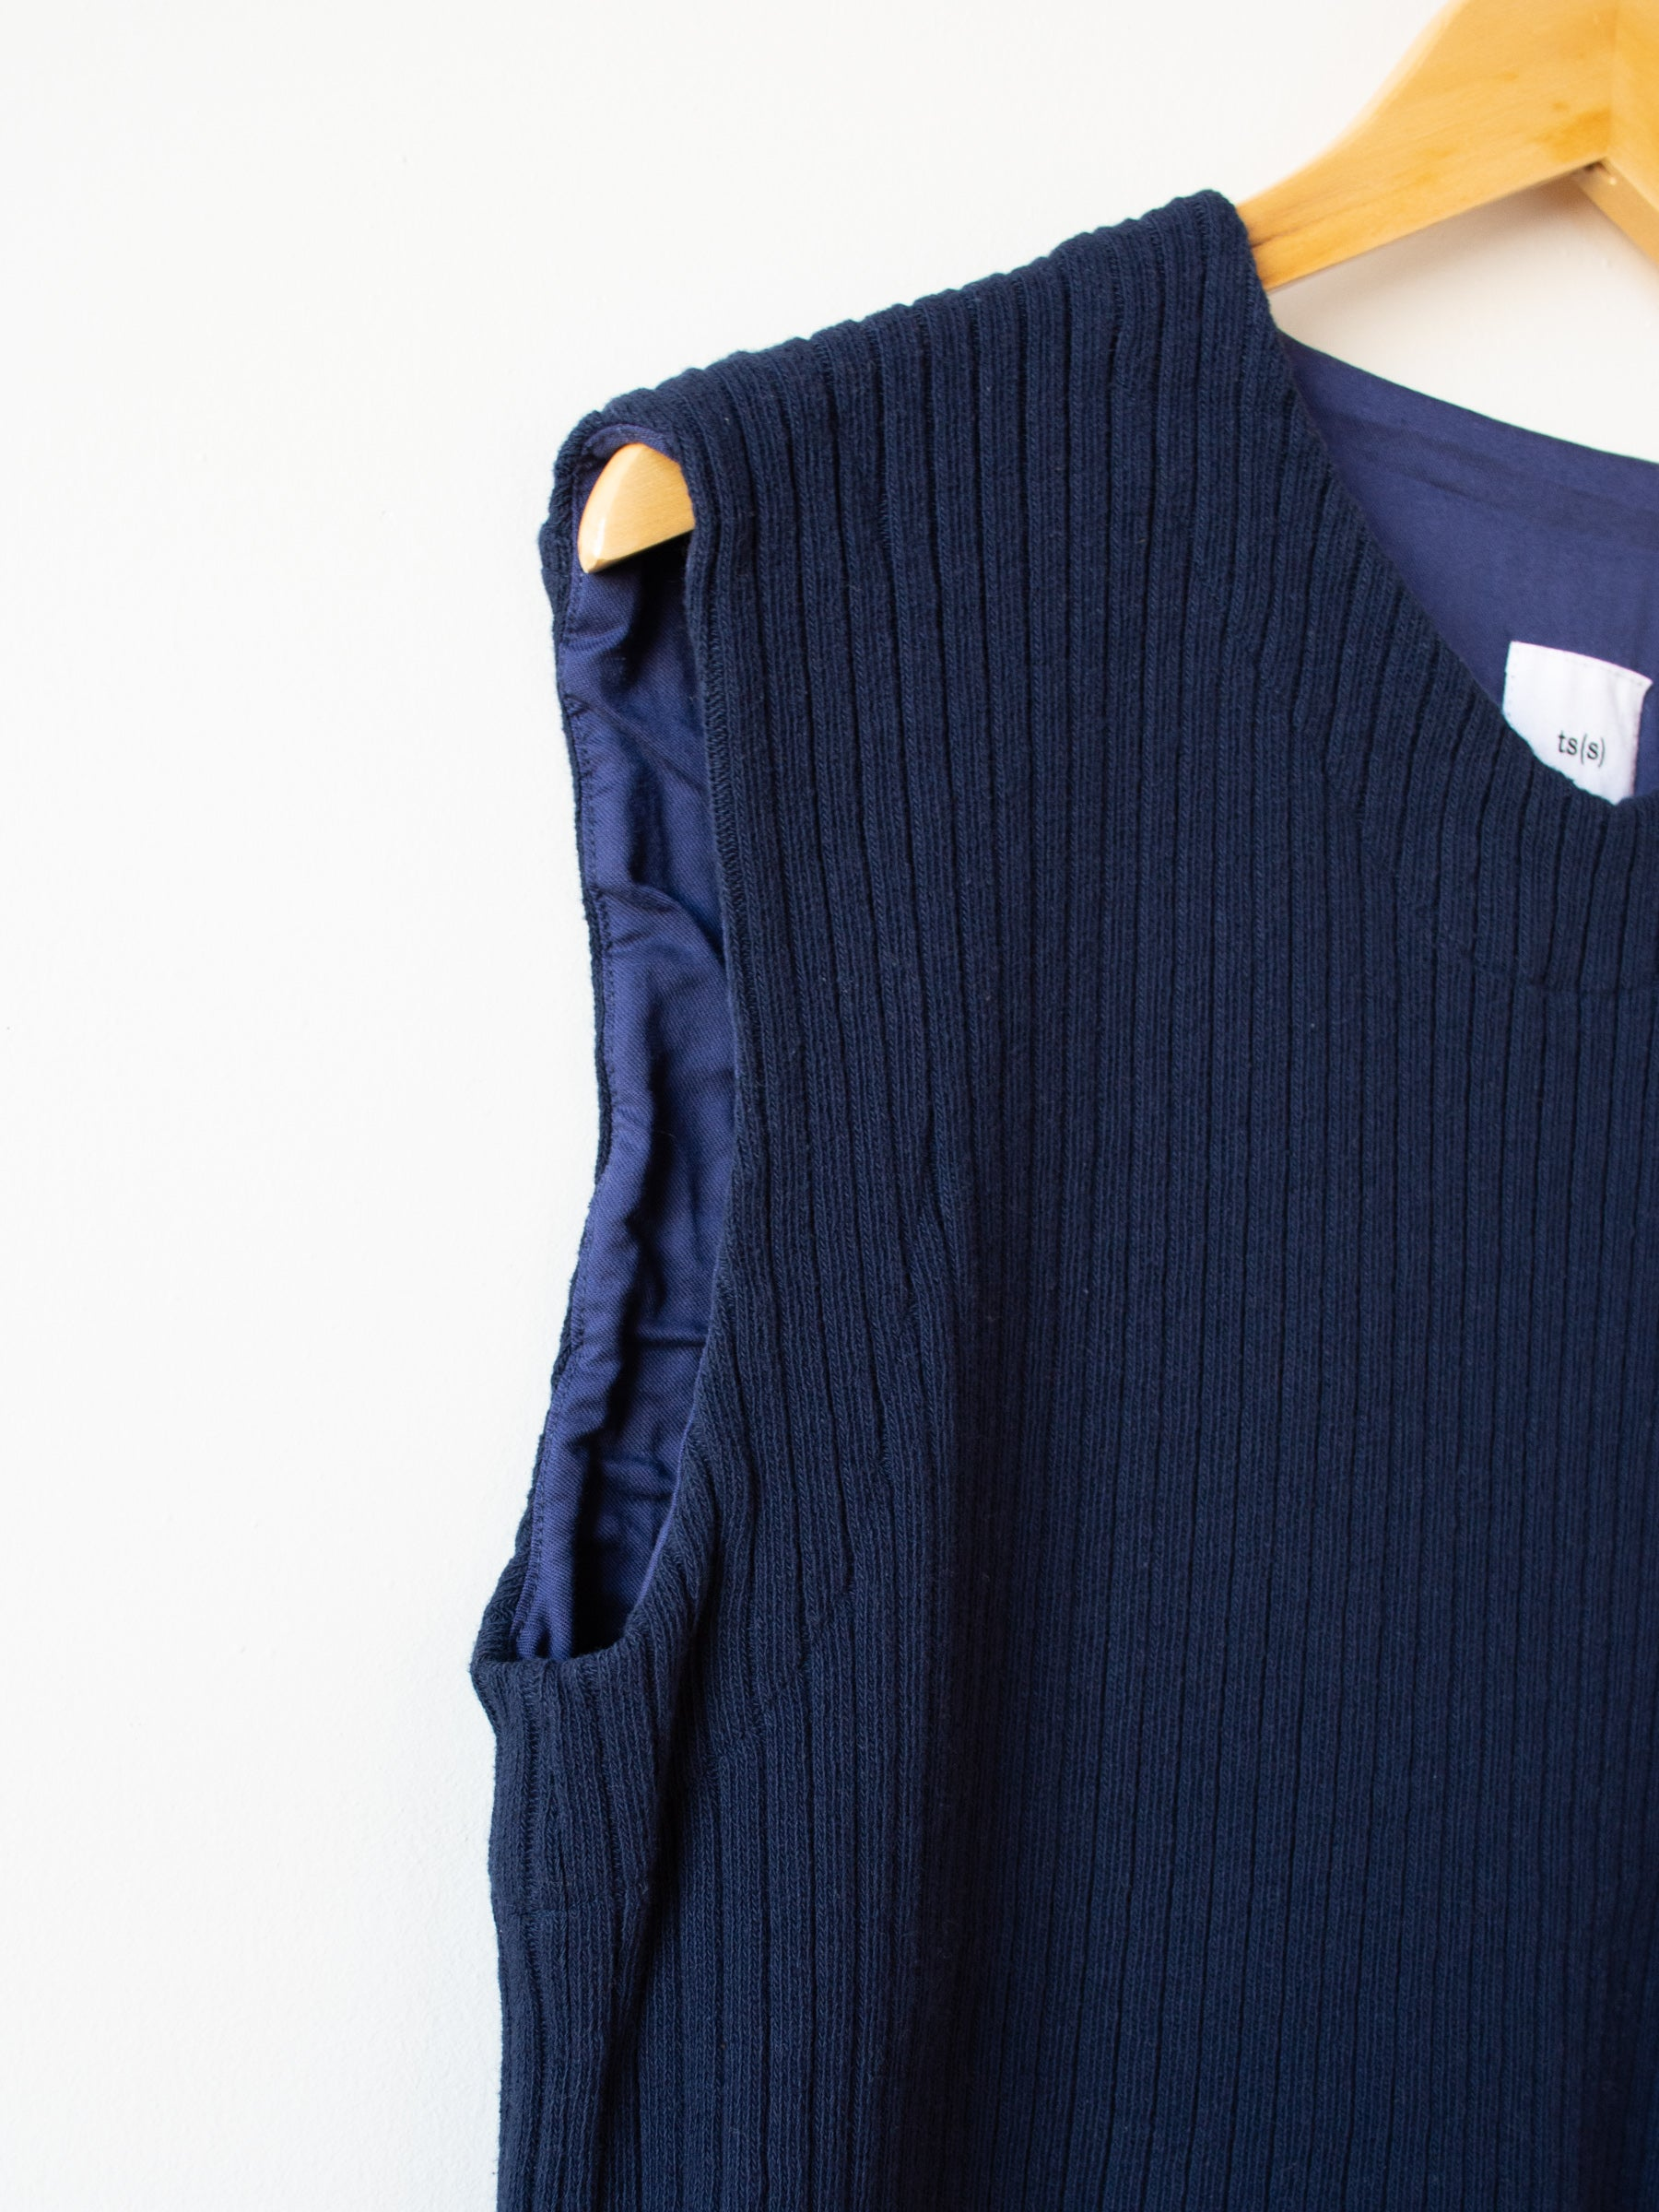 Cotton Pullover Top - Kinari